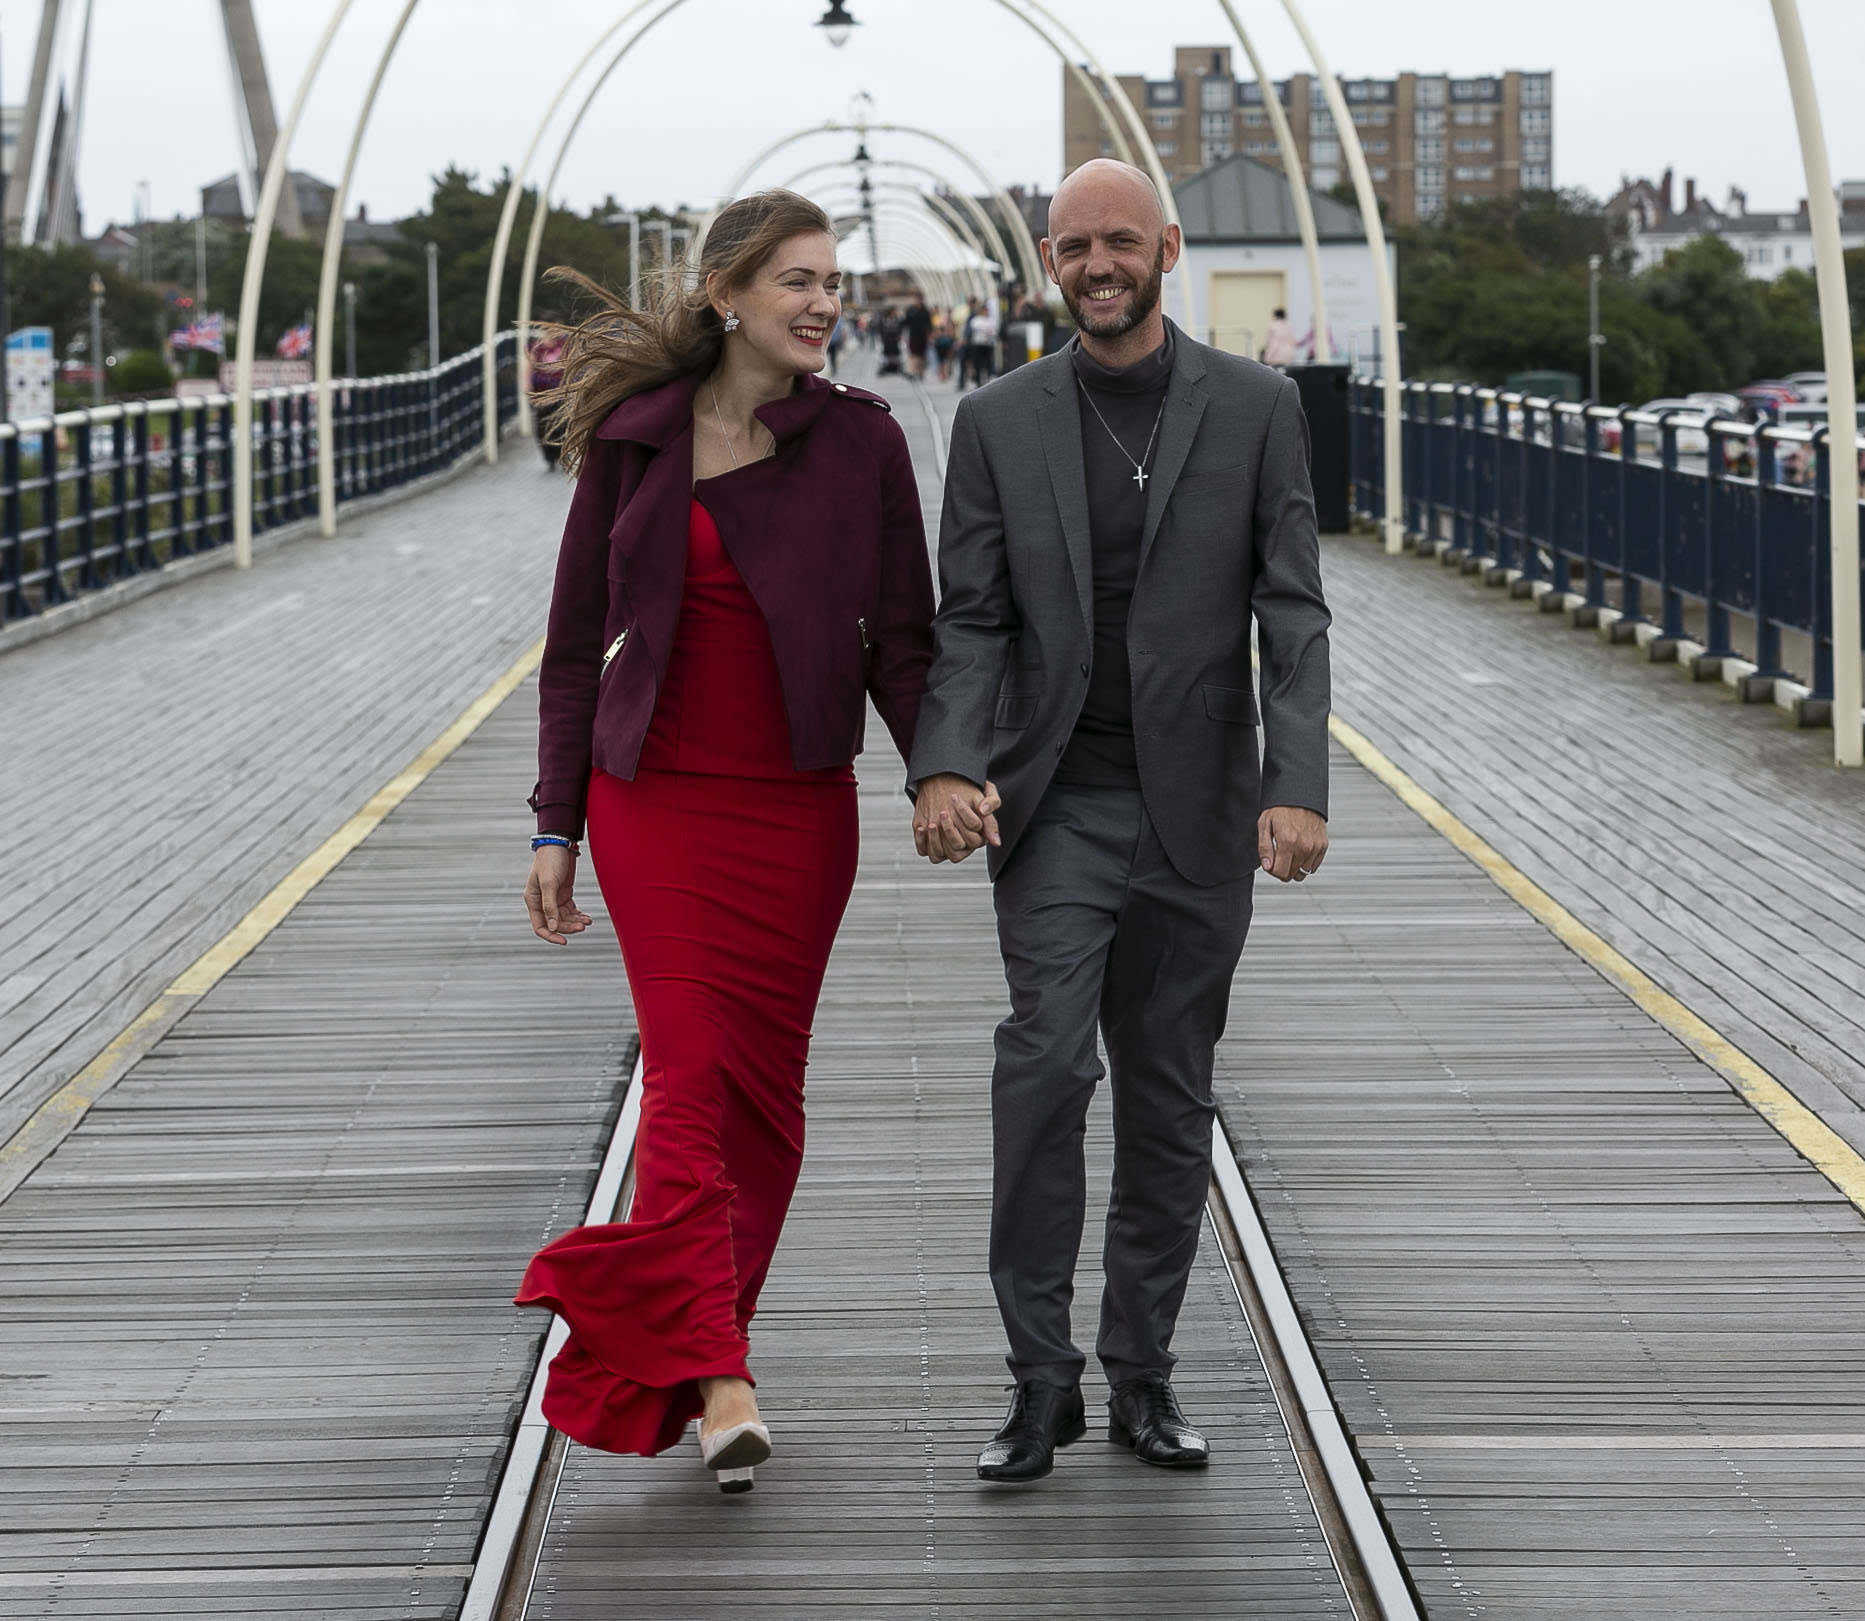 Christopher Rimmer and Viktorija Vakulenko, both 34, met through an app called Christian Dating for Free. [Photo: SWNS]